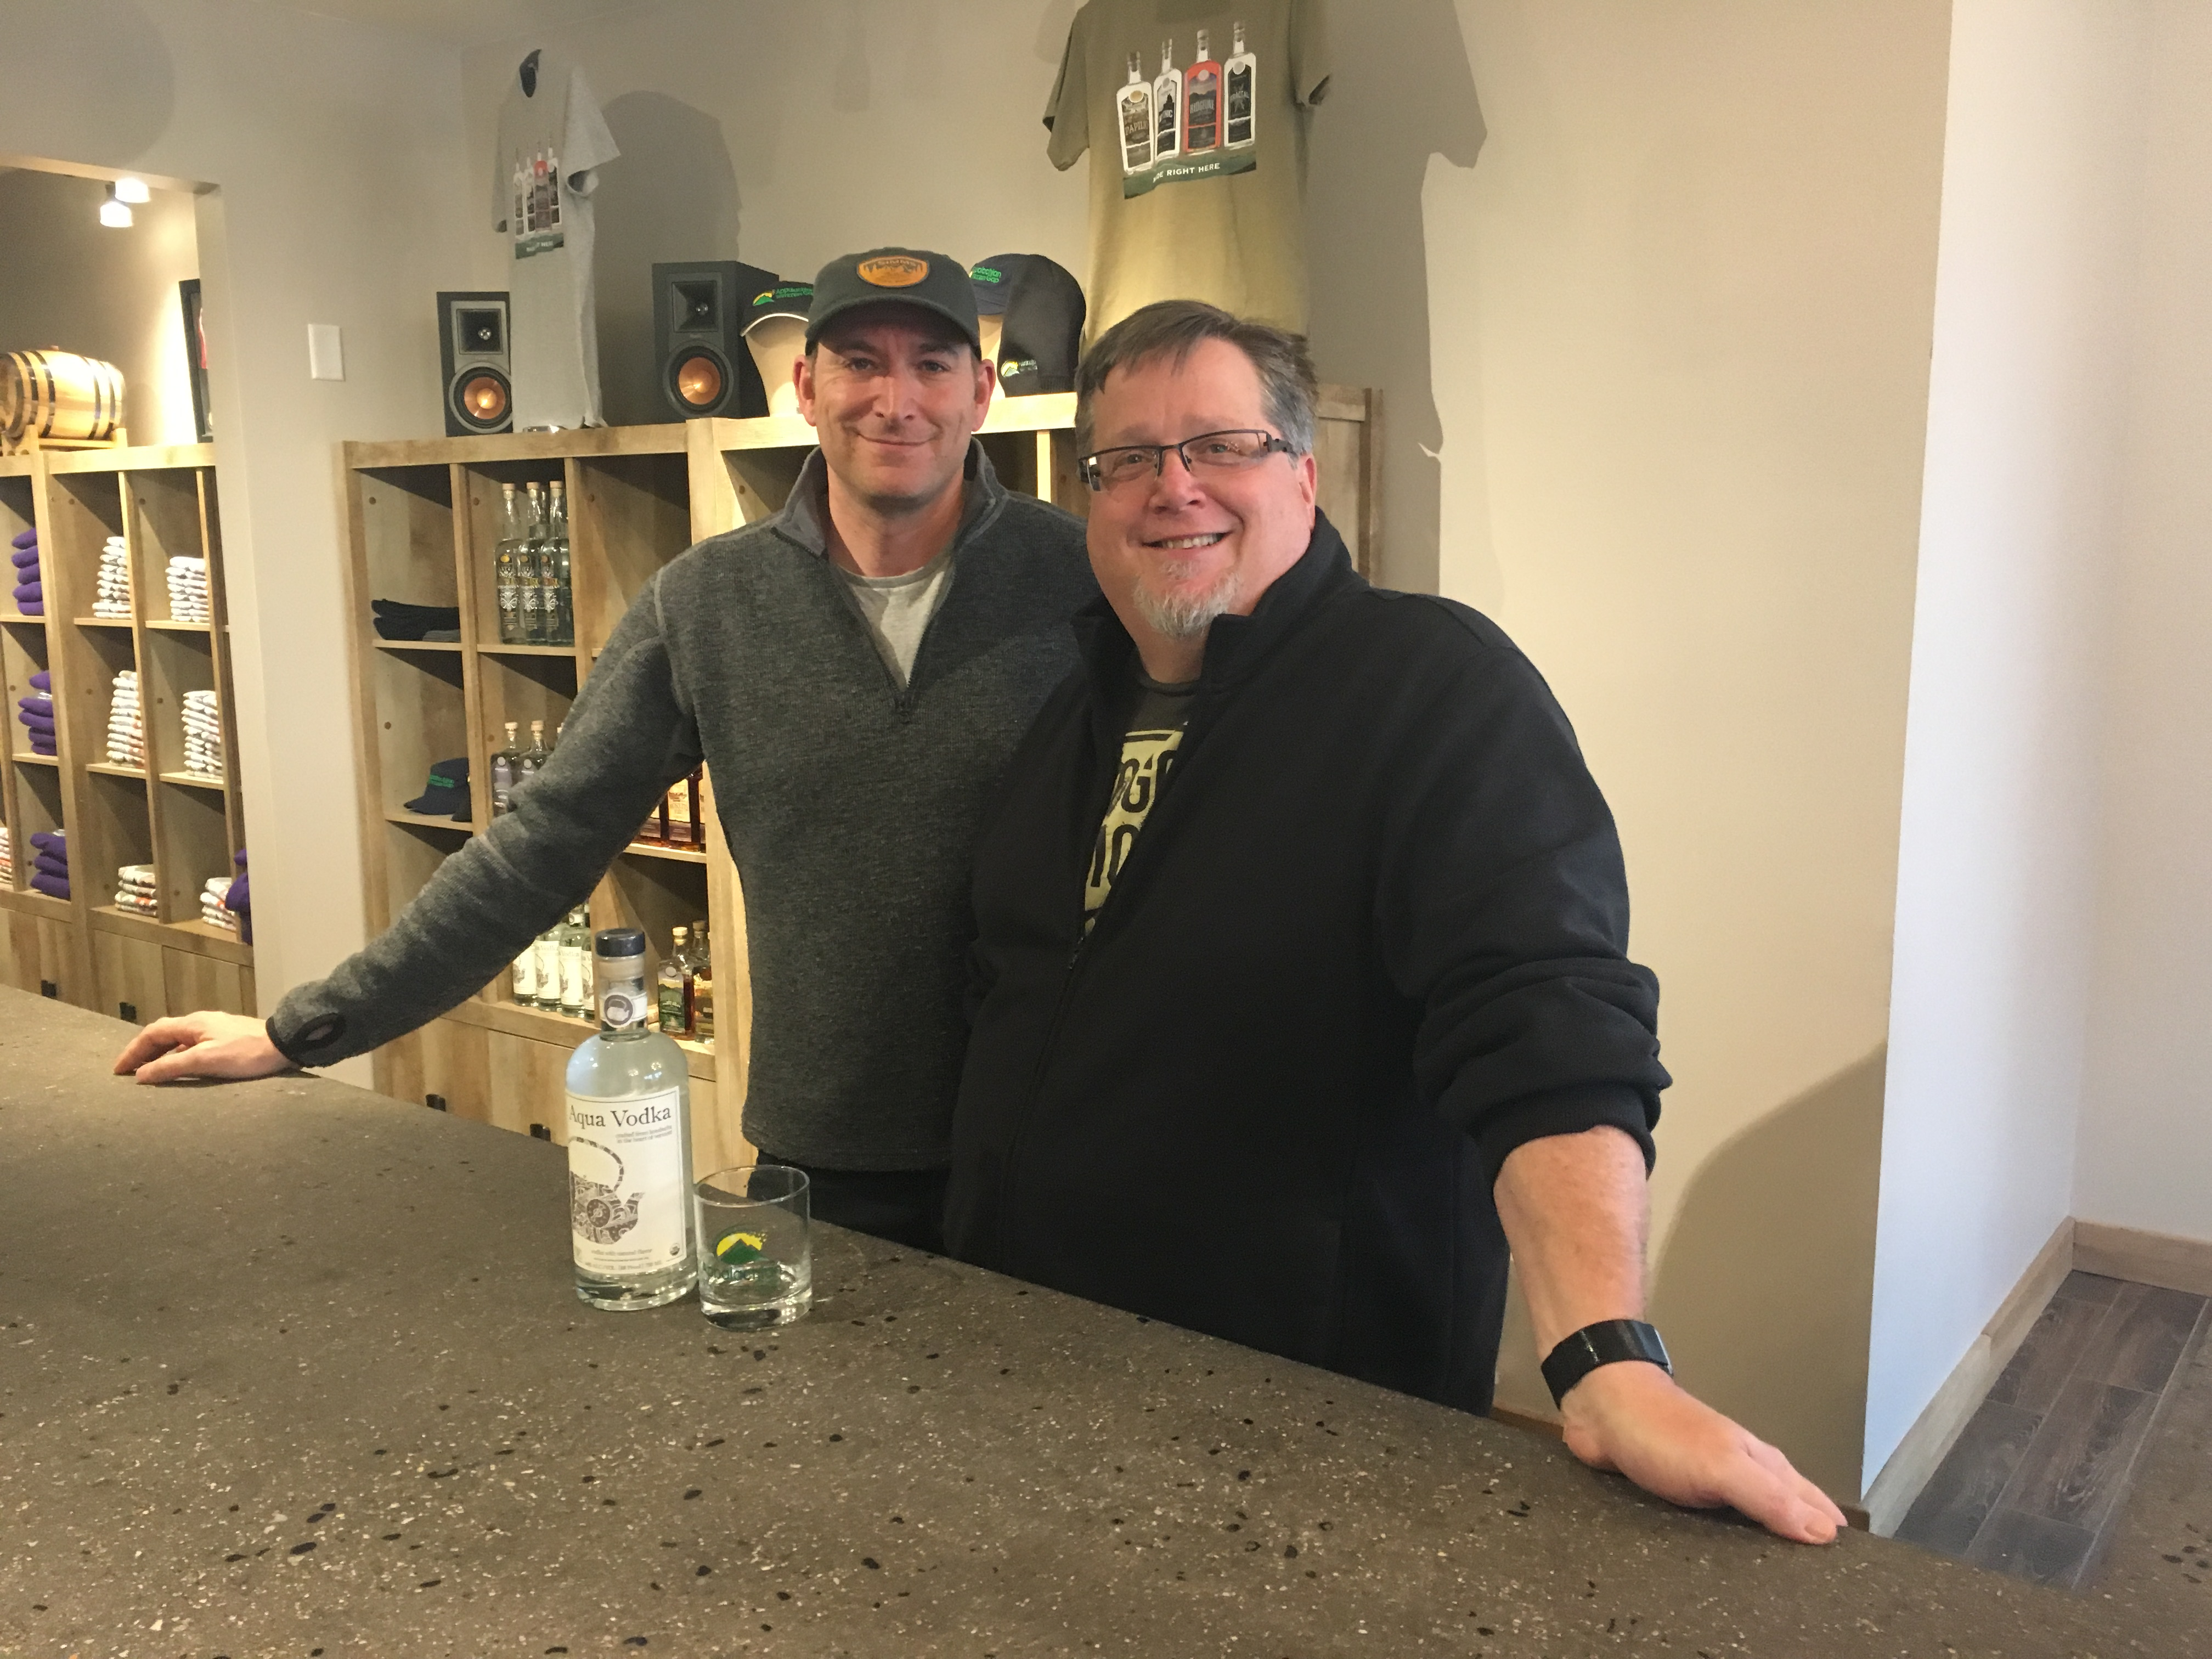 Jeff Weaber (L), founder/CEO of Aqua ViTea, and Lars Hubbard (R), co-owner of Appalachian Gap Distillery have partnered up to make Aqua Vodka: a vodka made with alcohol extracted from kombucha. Photo by Eric Shimelonis